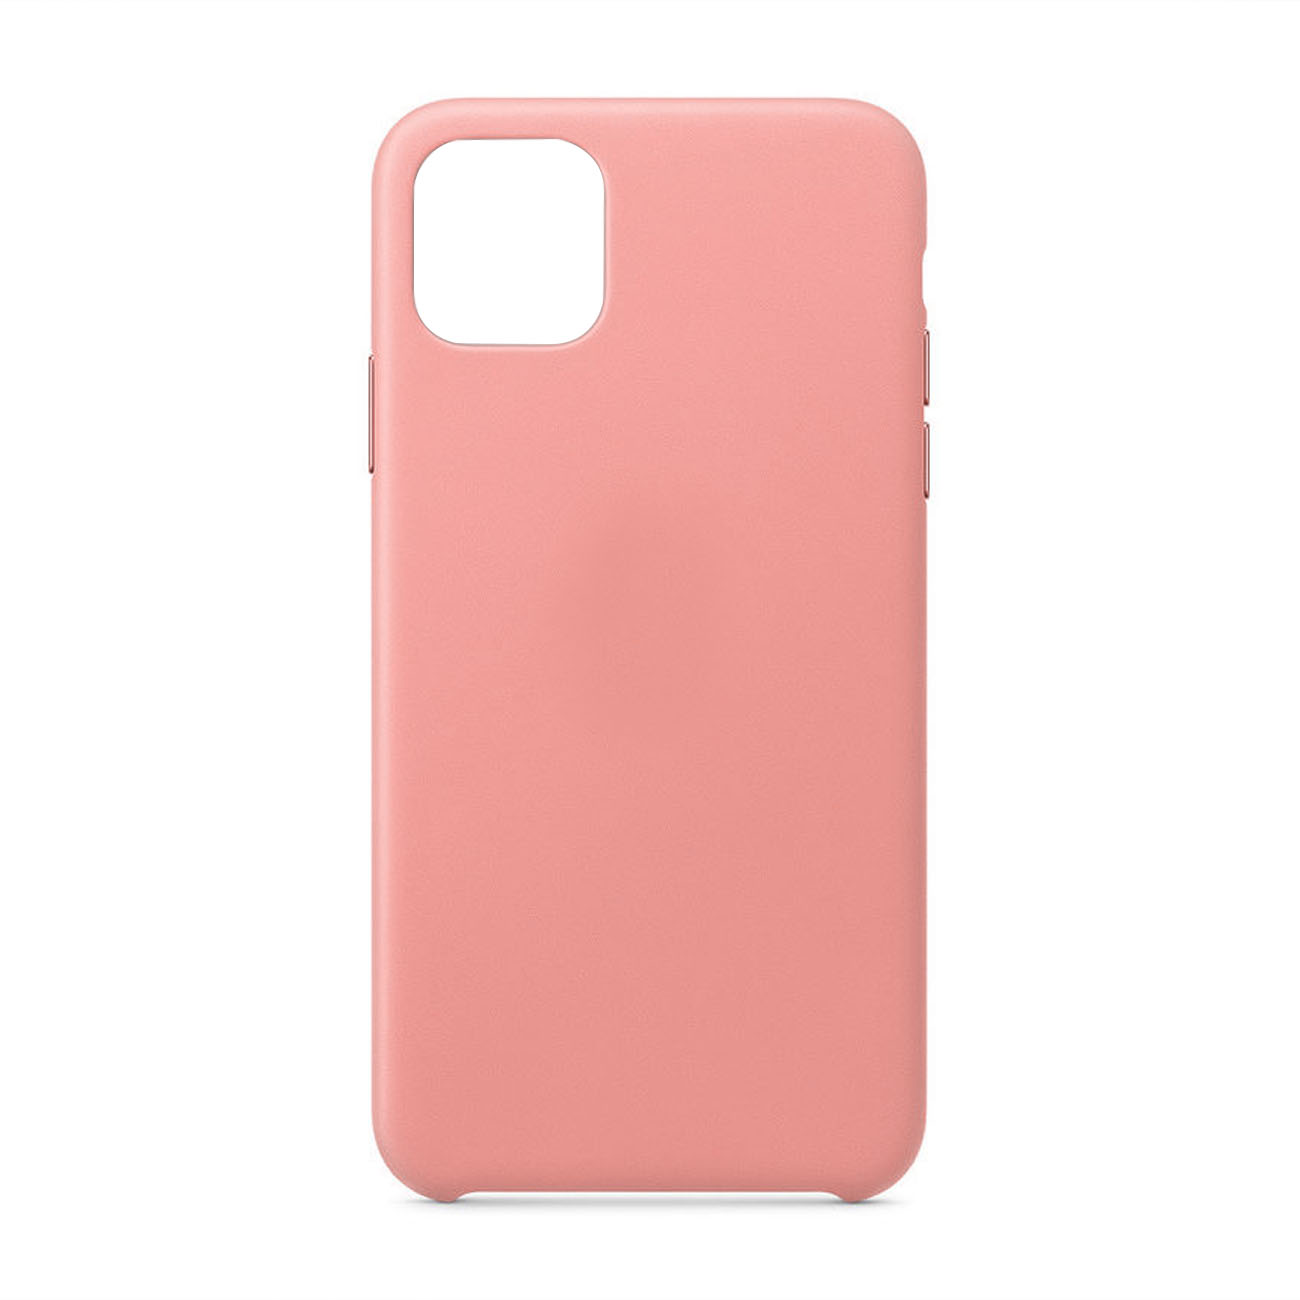 Apple iPhone 11 Gummy Cases In Pink